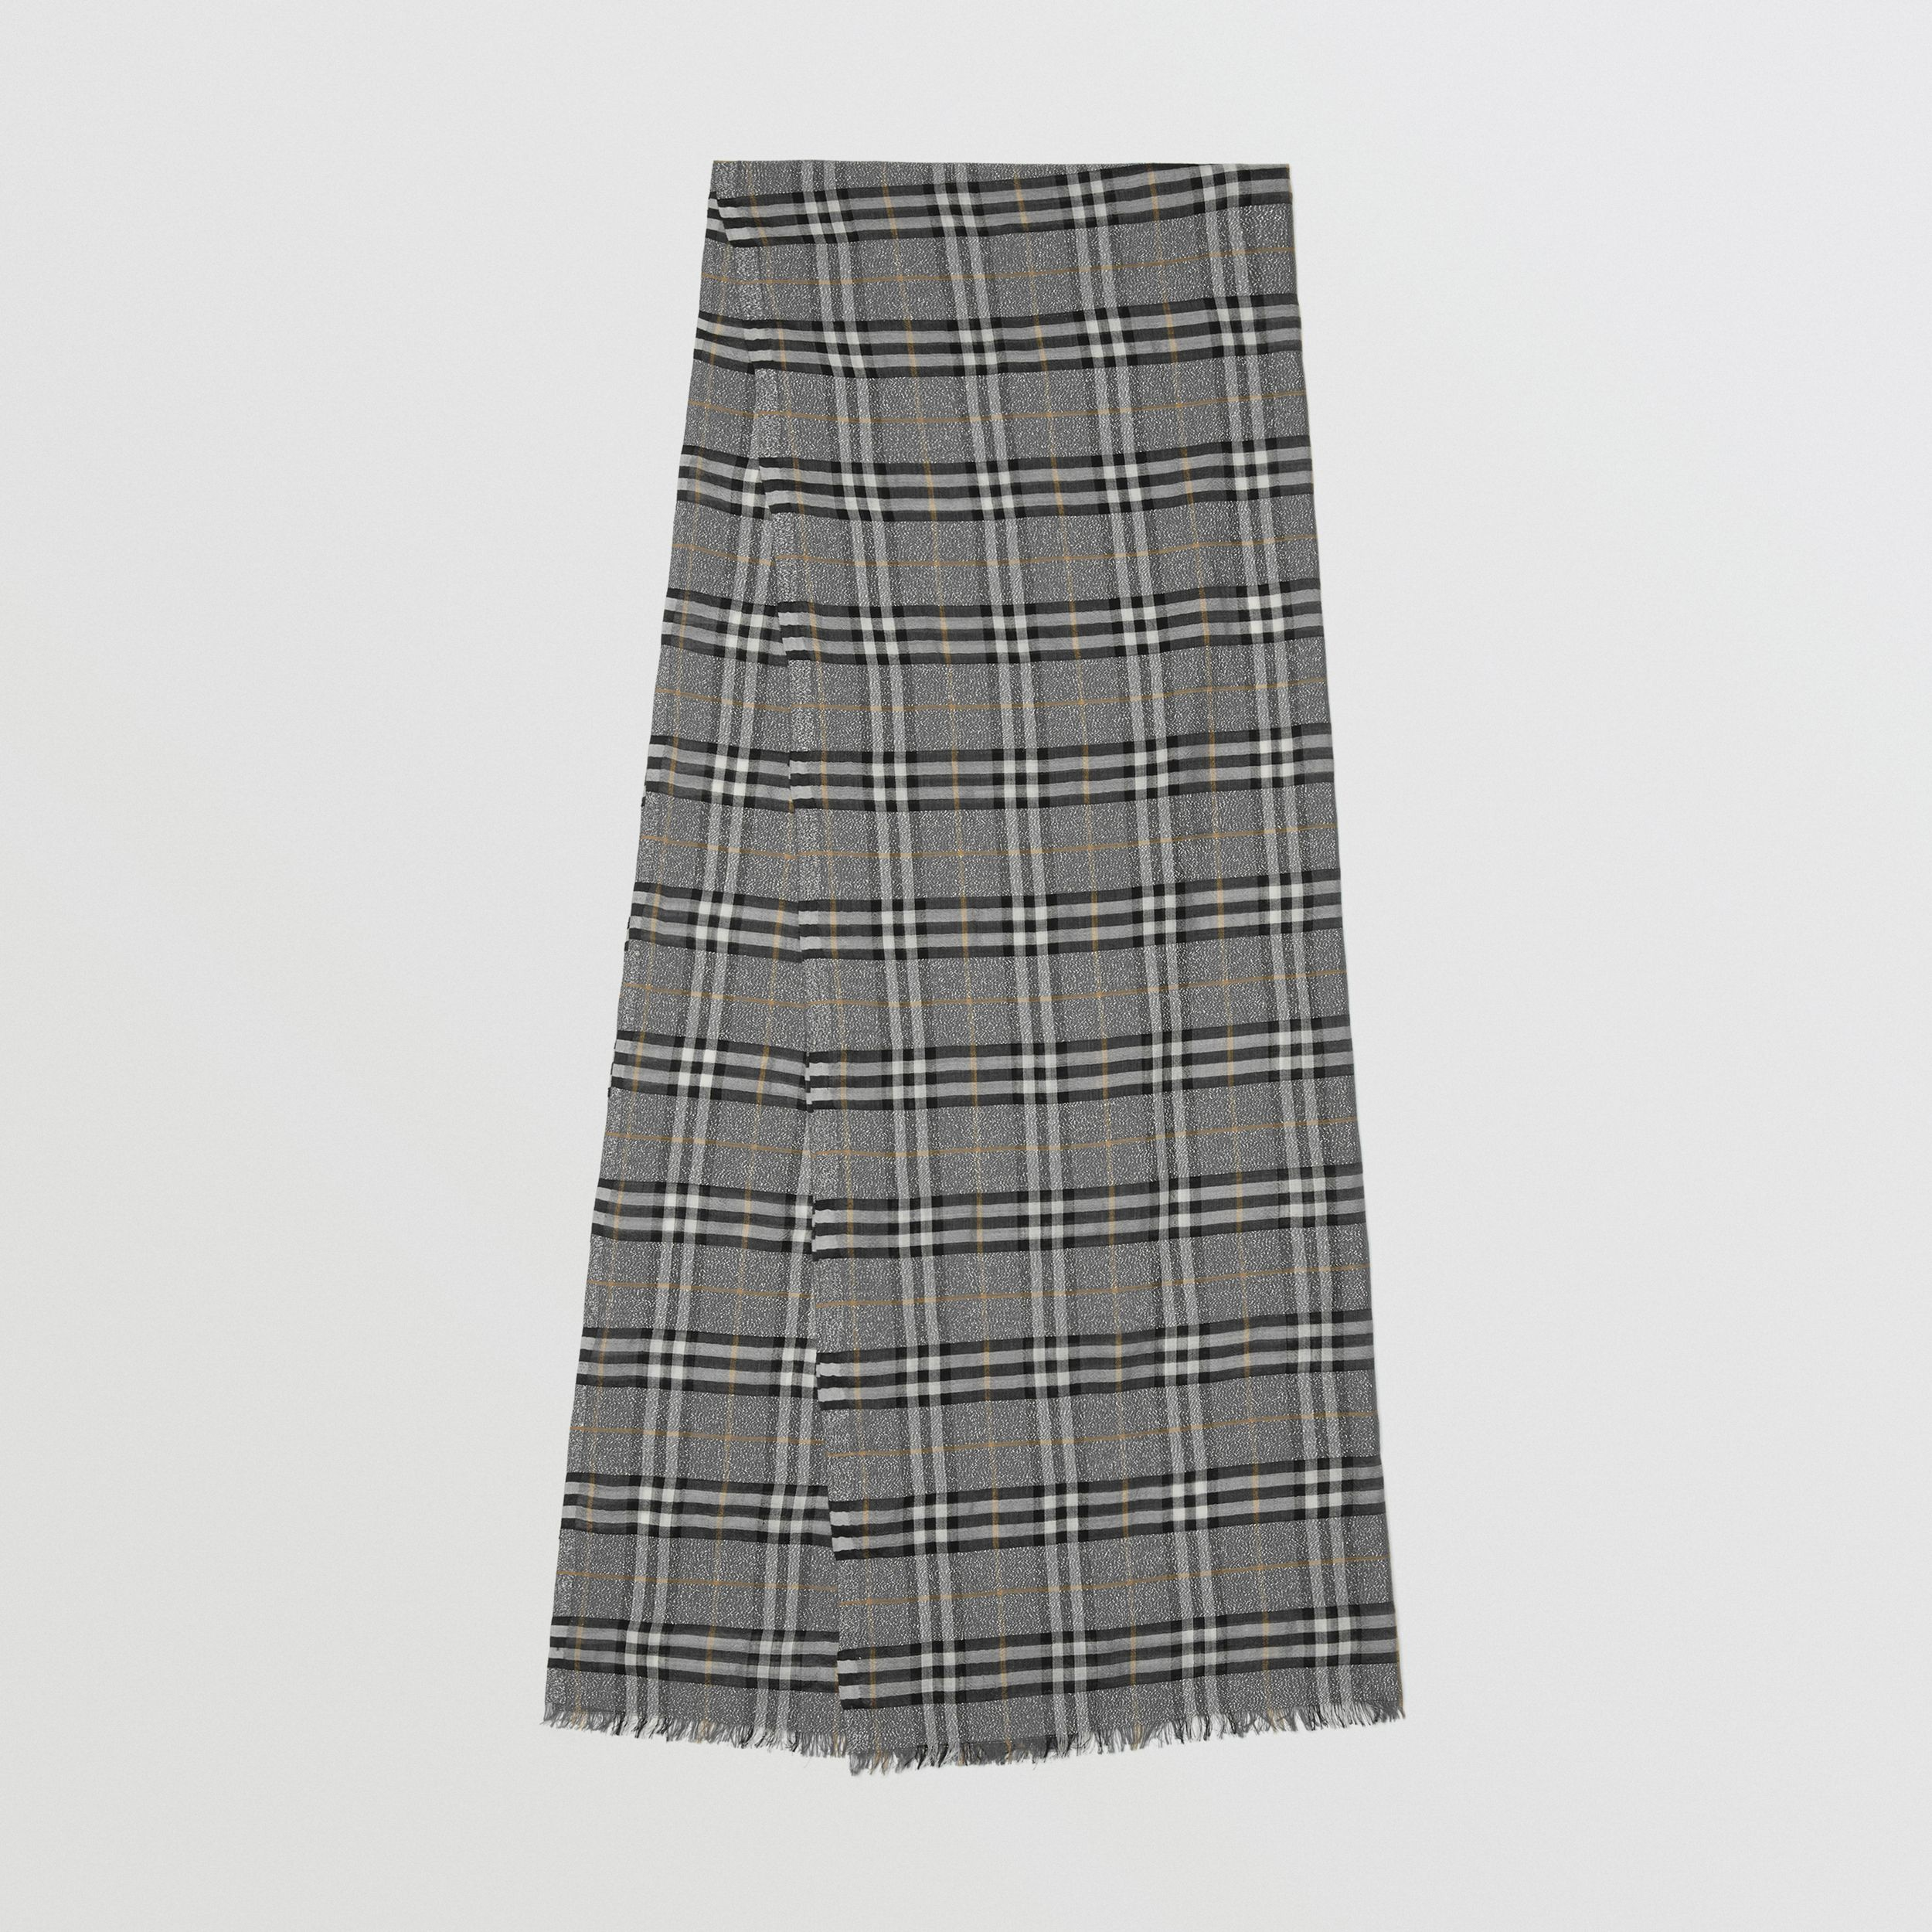 Metallic Vintage Check Wool Silk Blend Scarf in Pewter Grey | Burberry - 1